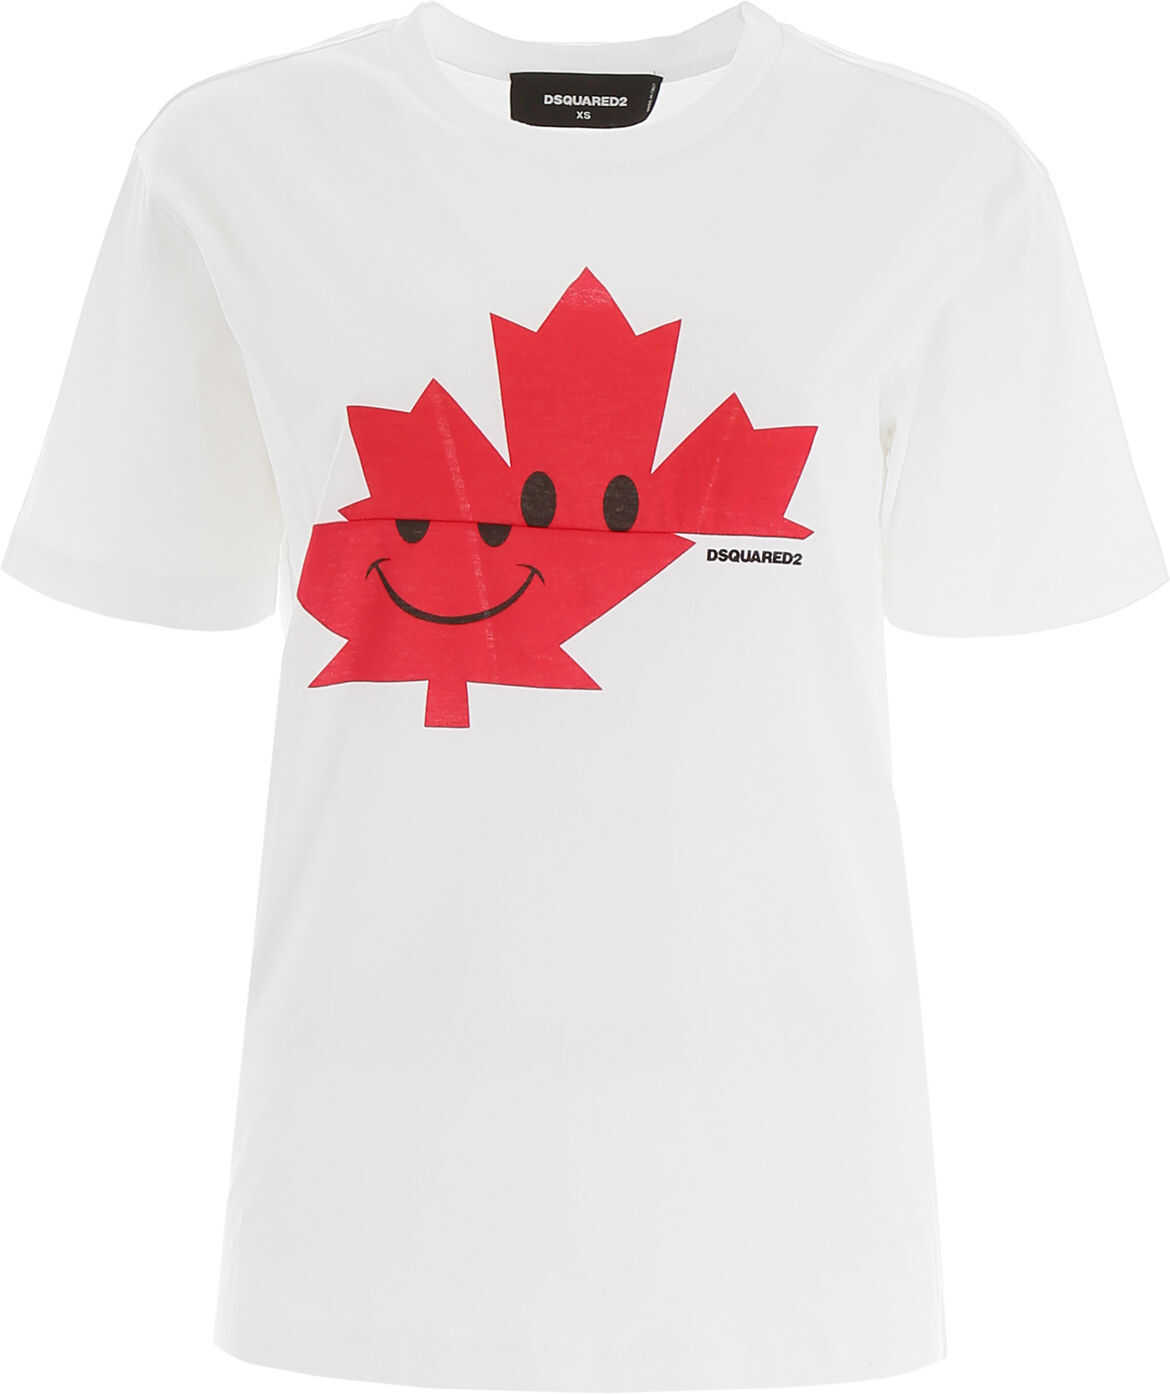 DSQUARED2 Smile Leaf T-Shirt WHITE